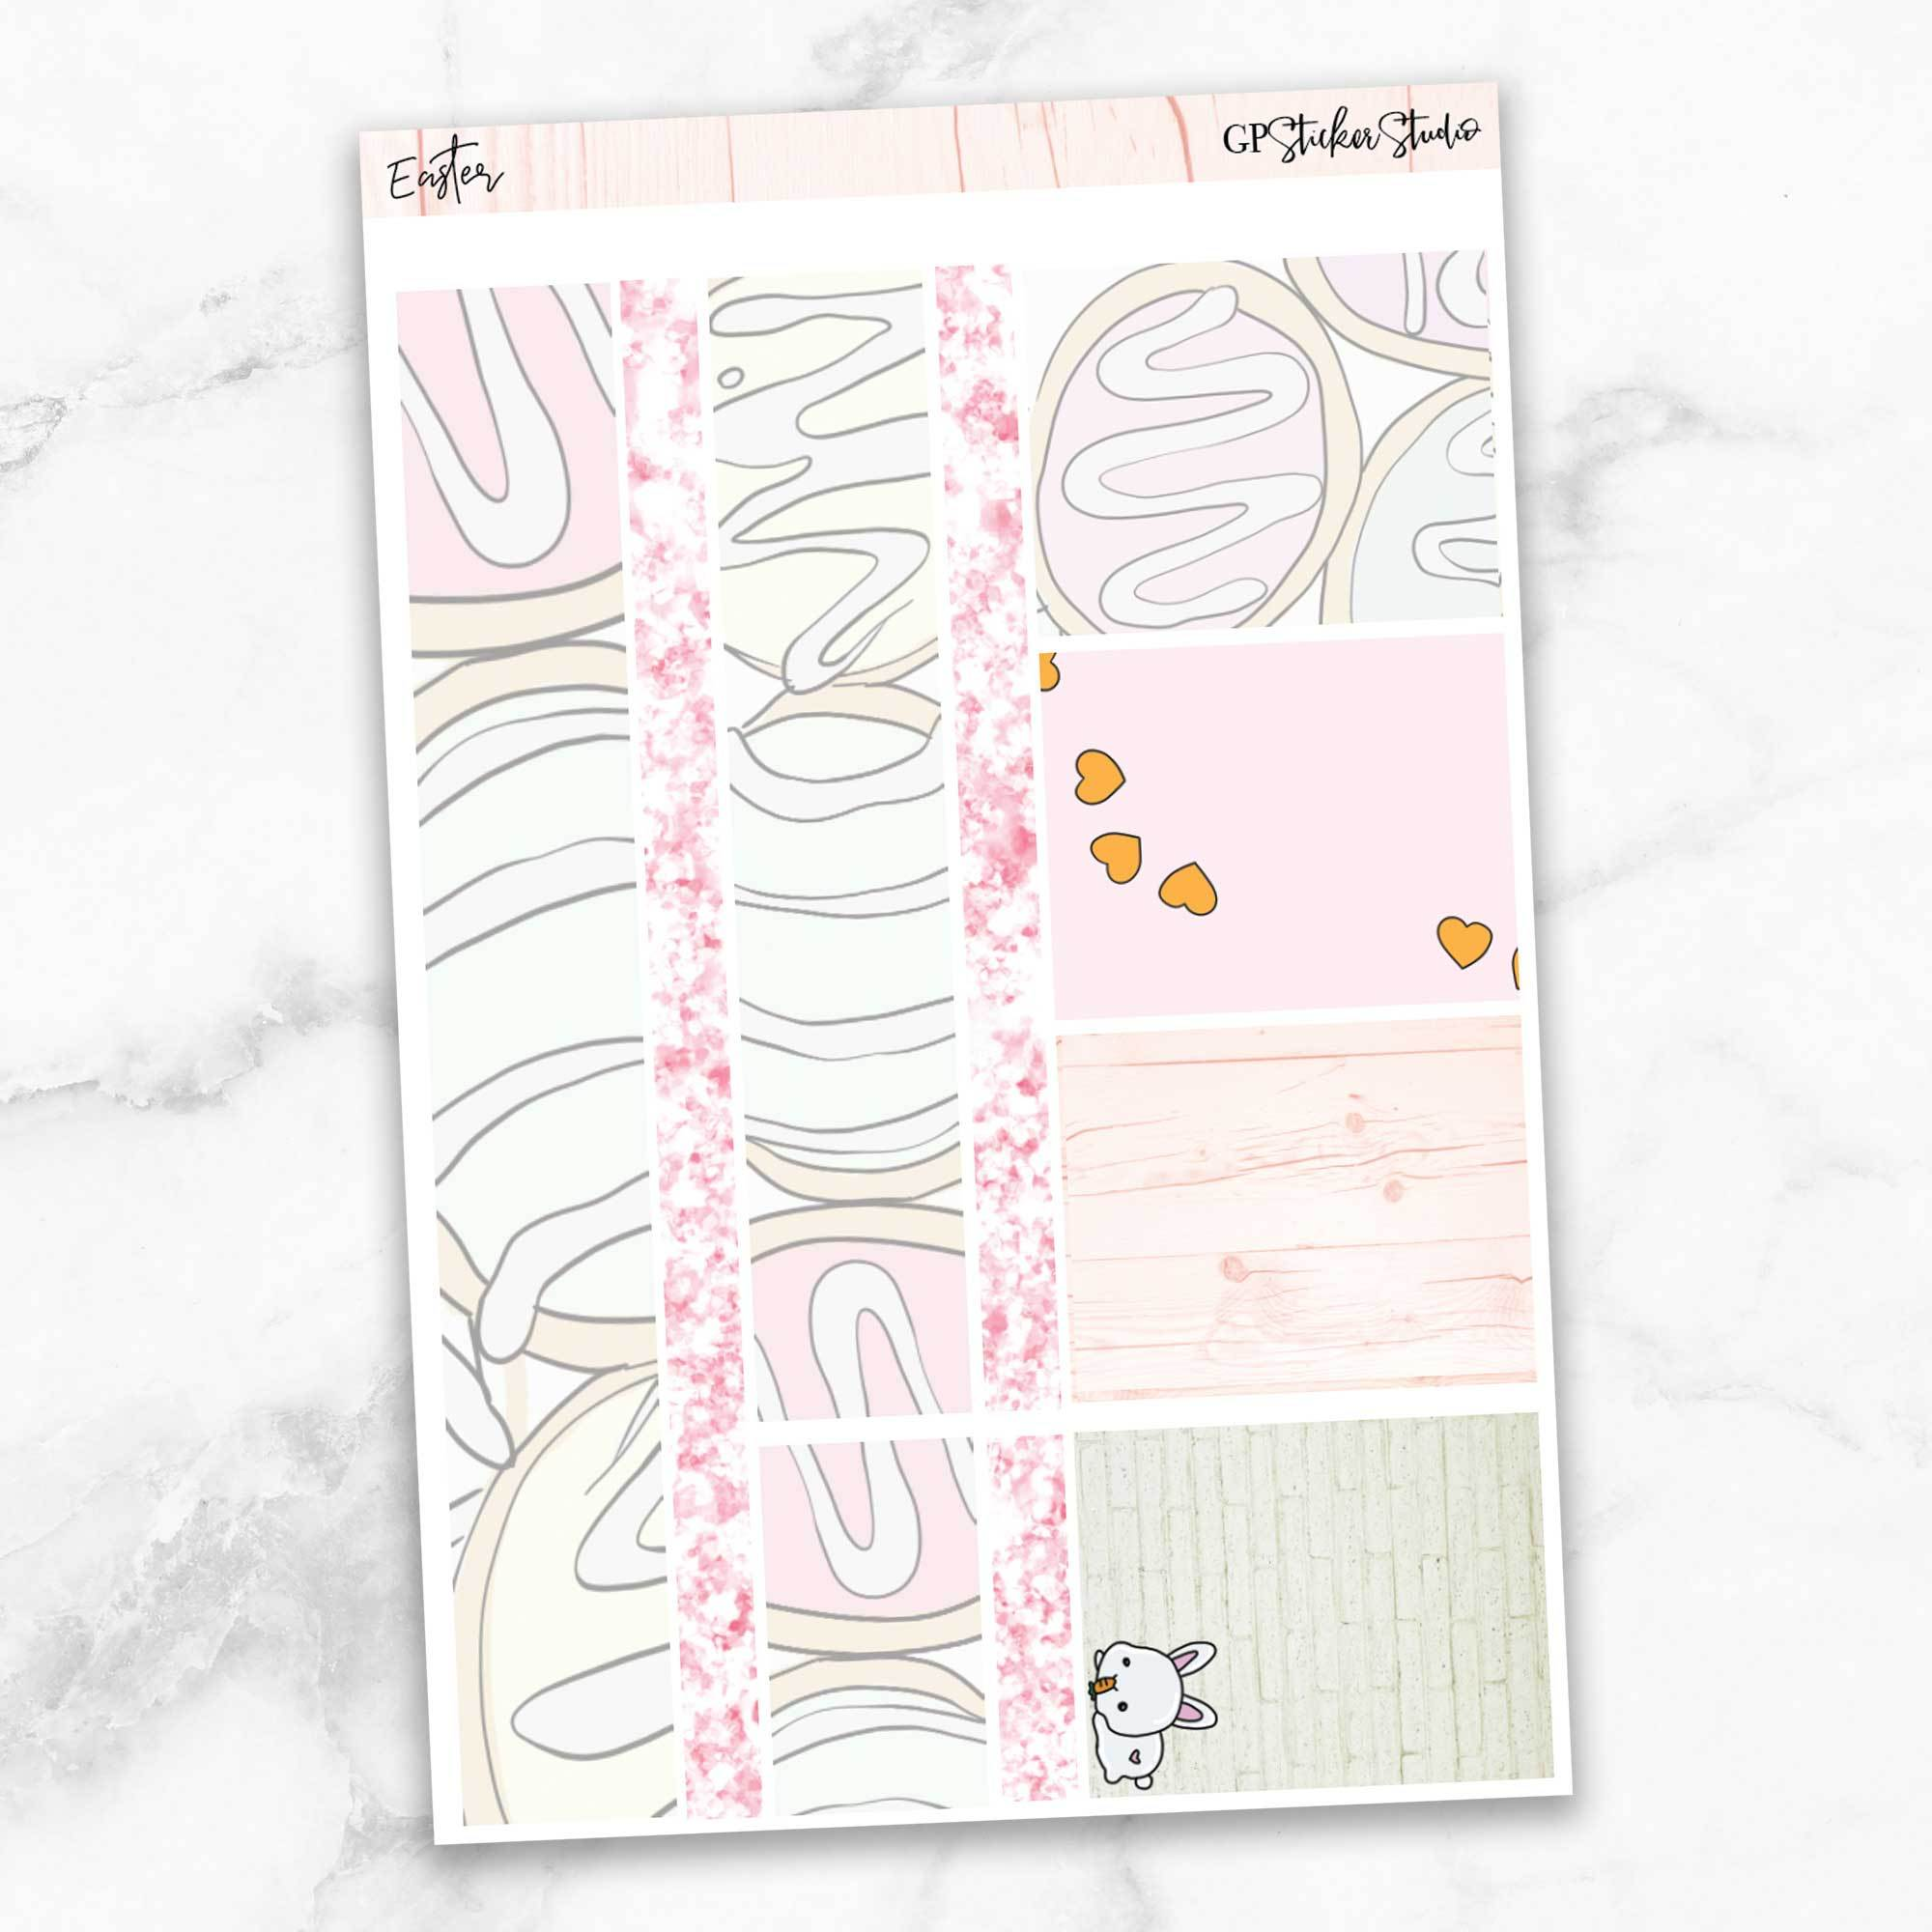 EASTER Washi Sheet Stickers-The GP Studio